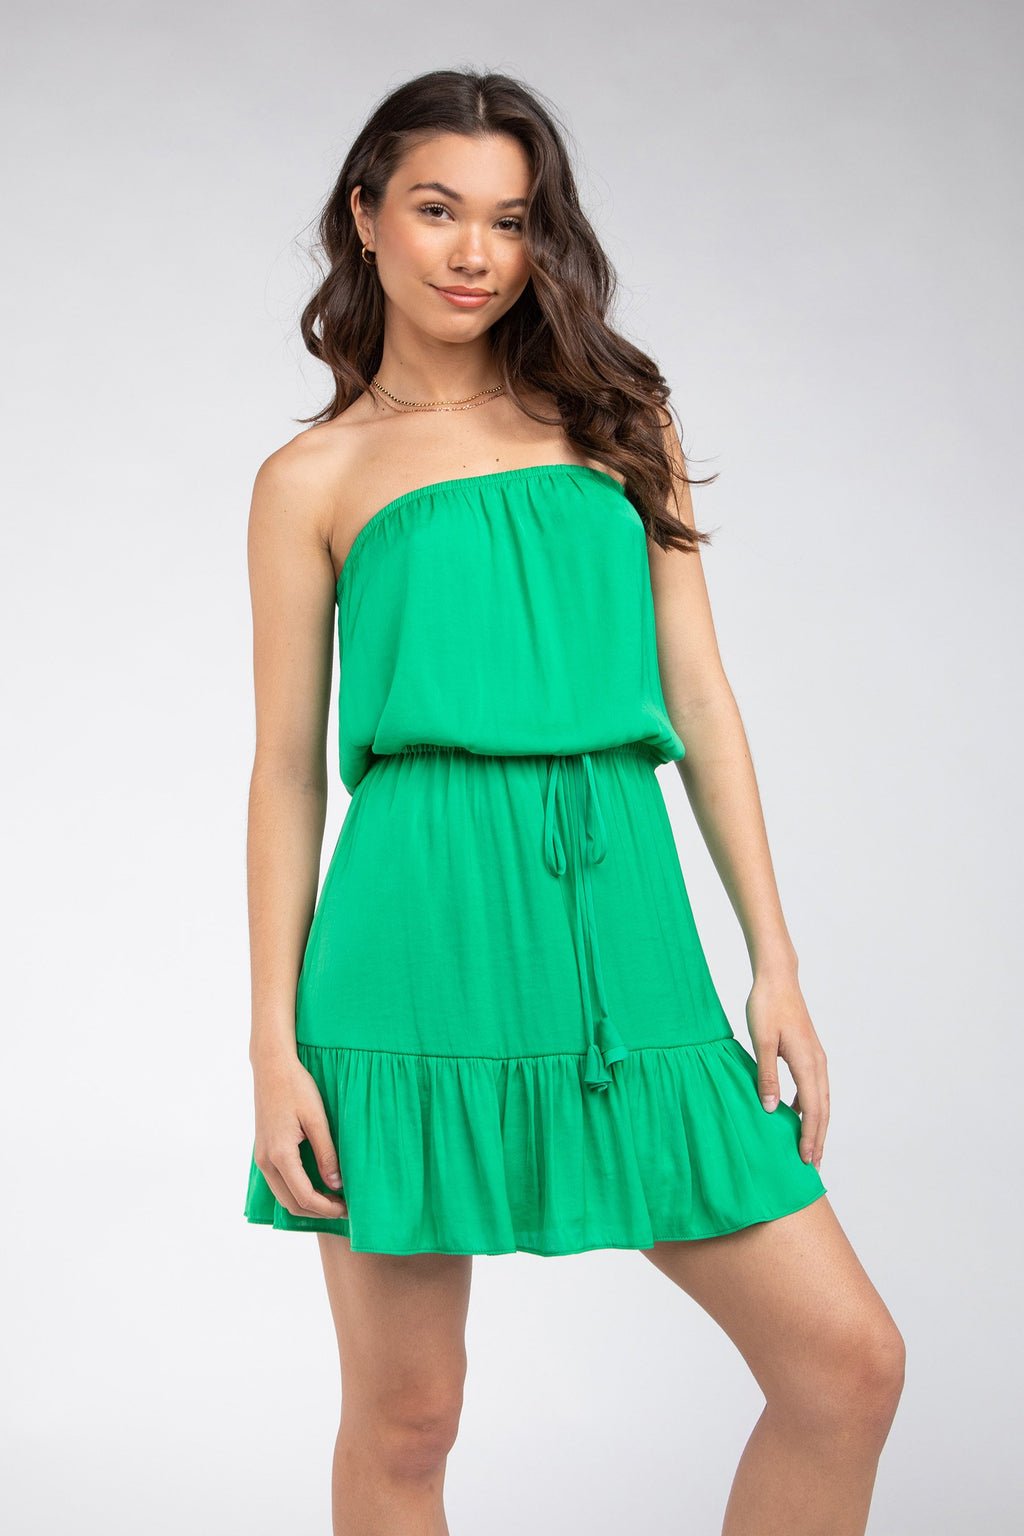 LAST CALL SIZE S | Tube Top Dress in Jade Green